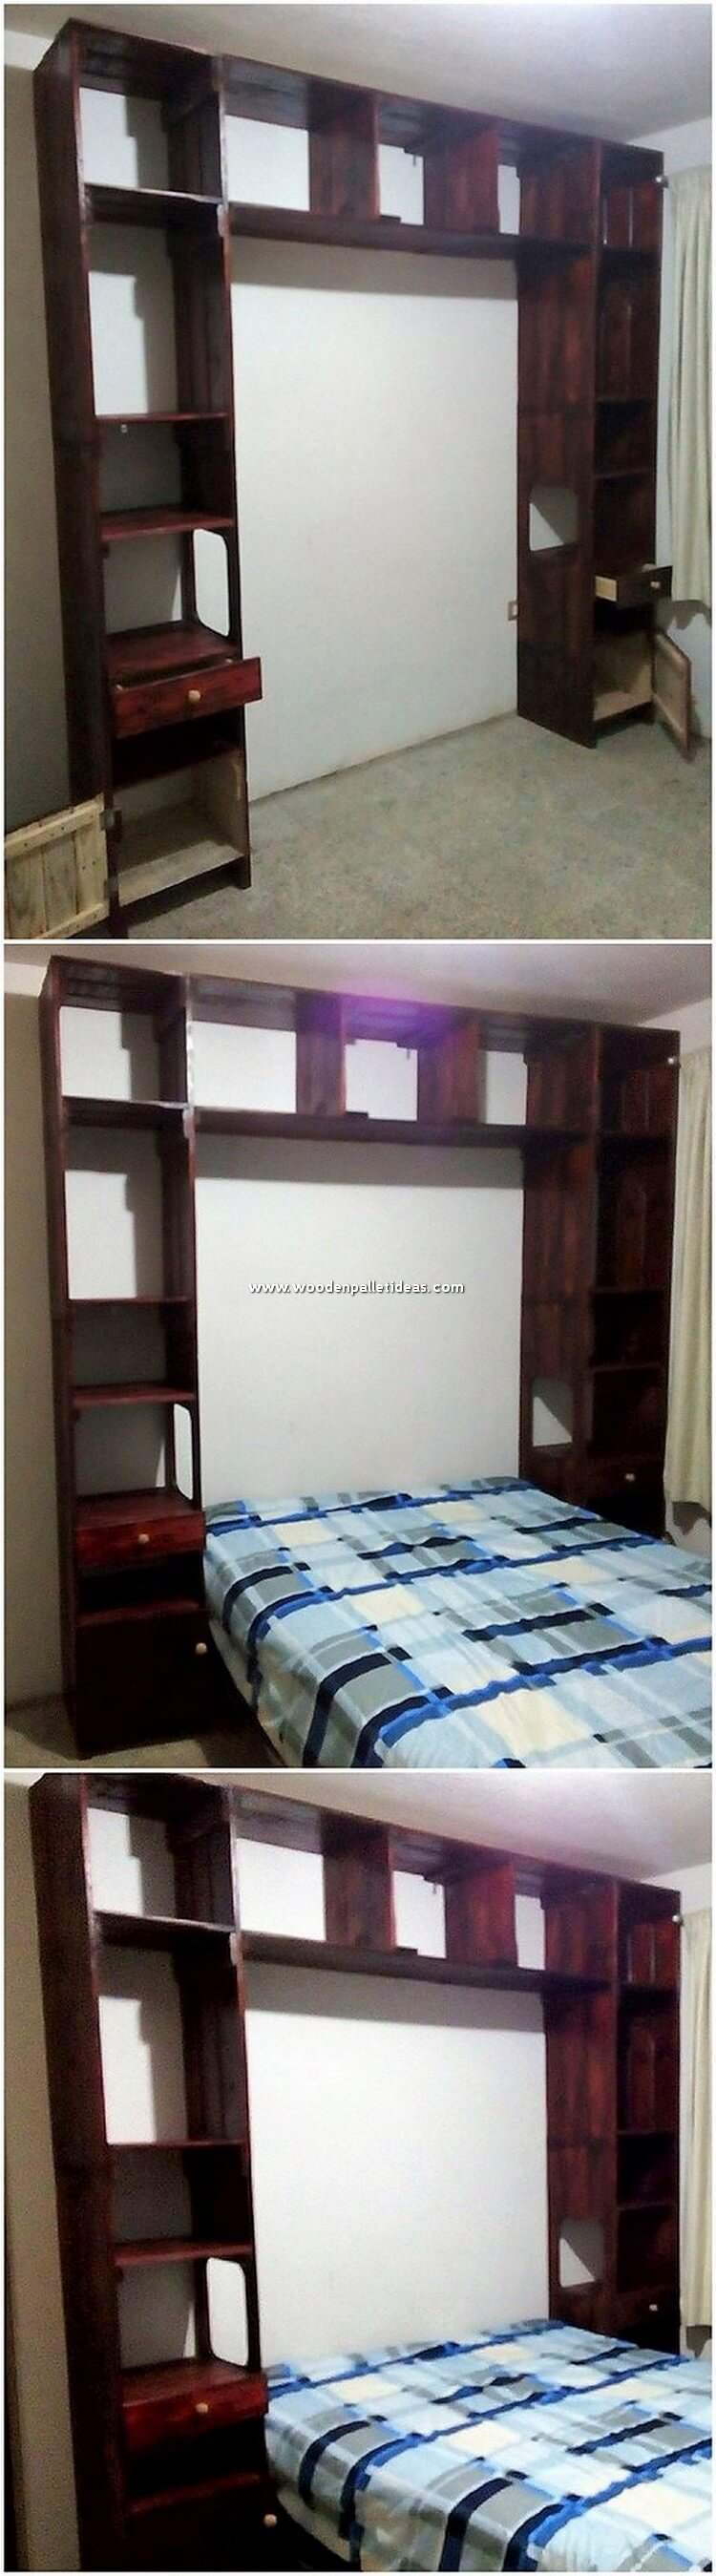 Pallet Bed Headboard Unit